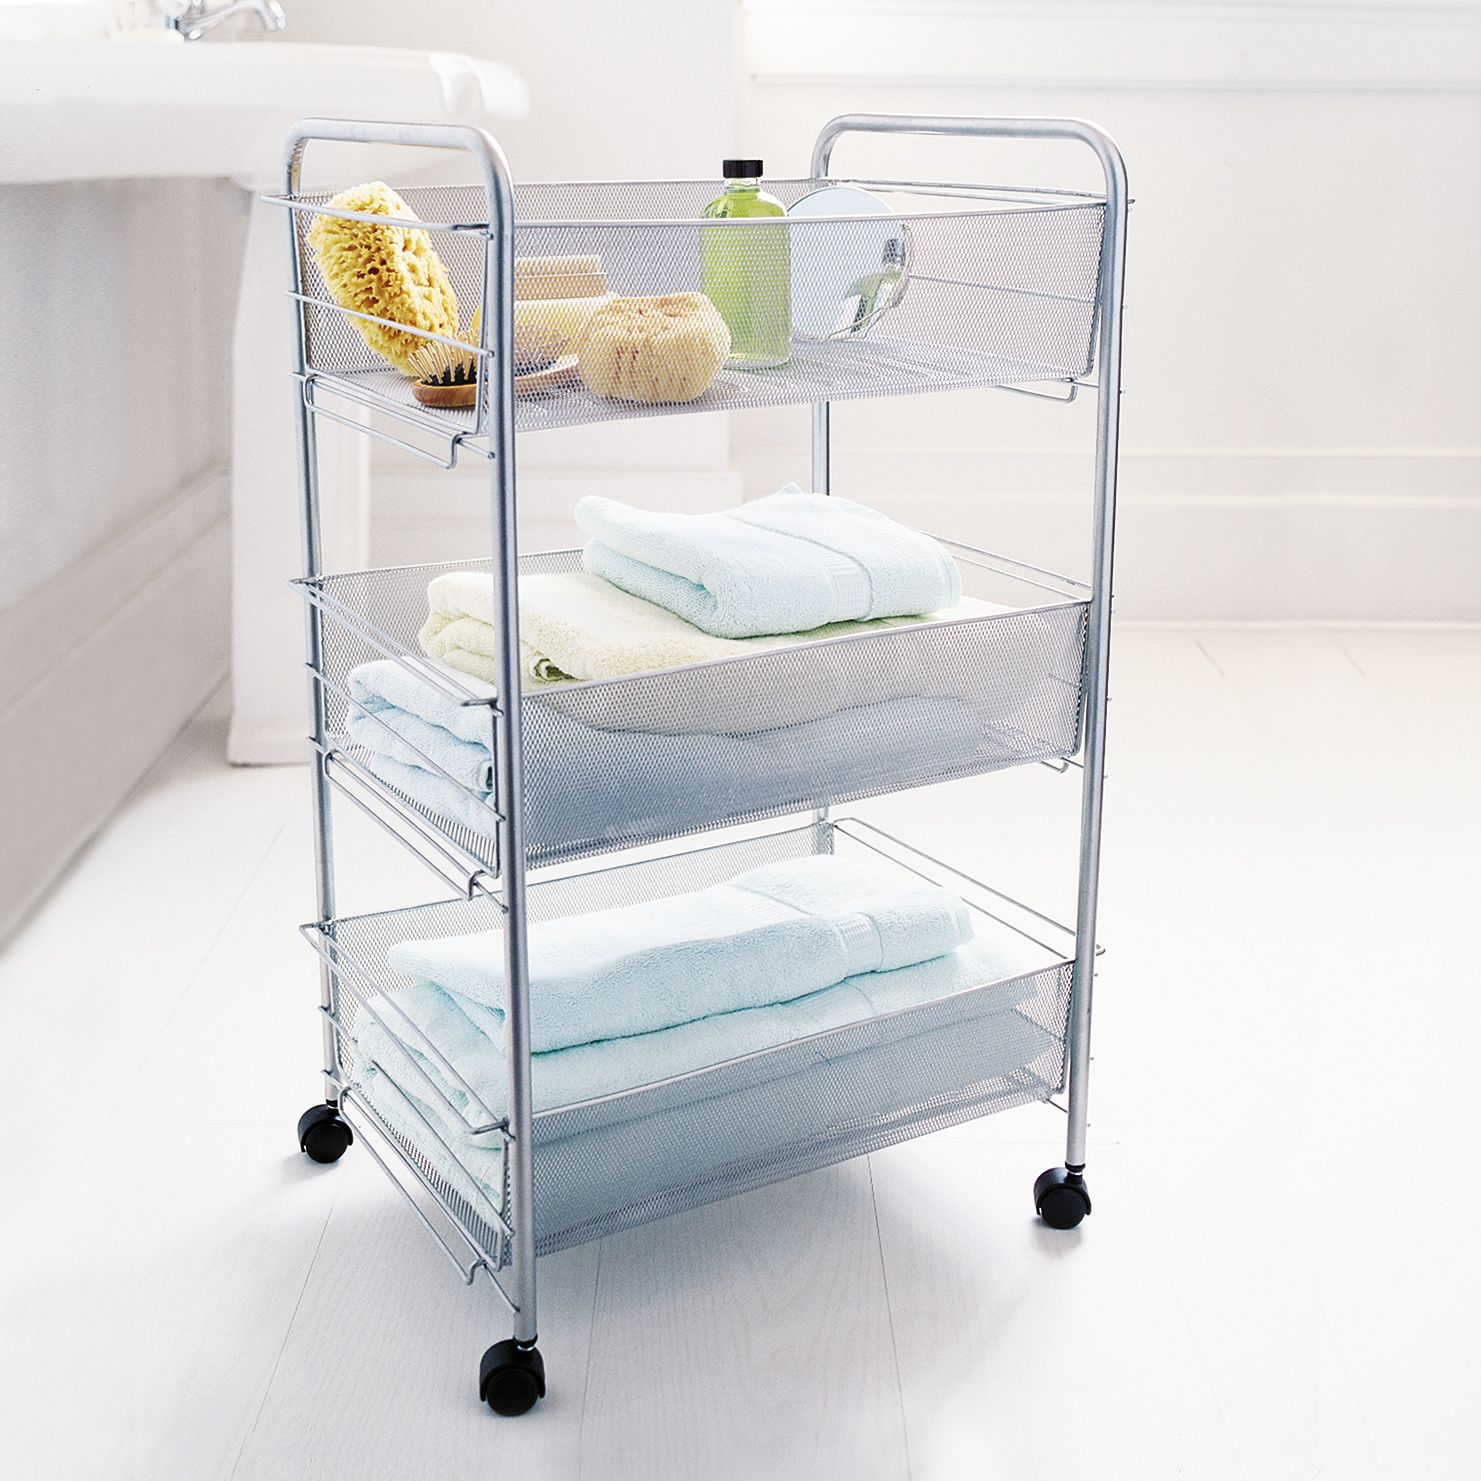 What About Something Like This Tucked Away Under Your Desk Mesh Mesmerizing Small Bathroom Cart Design Ideas